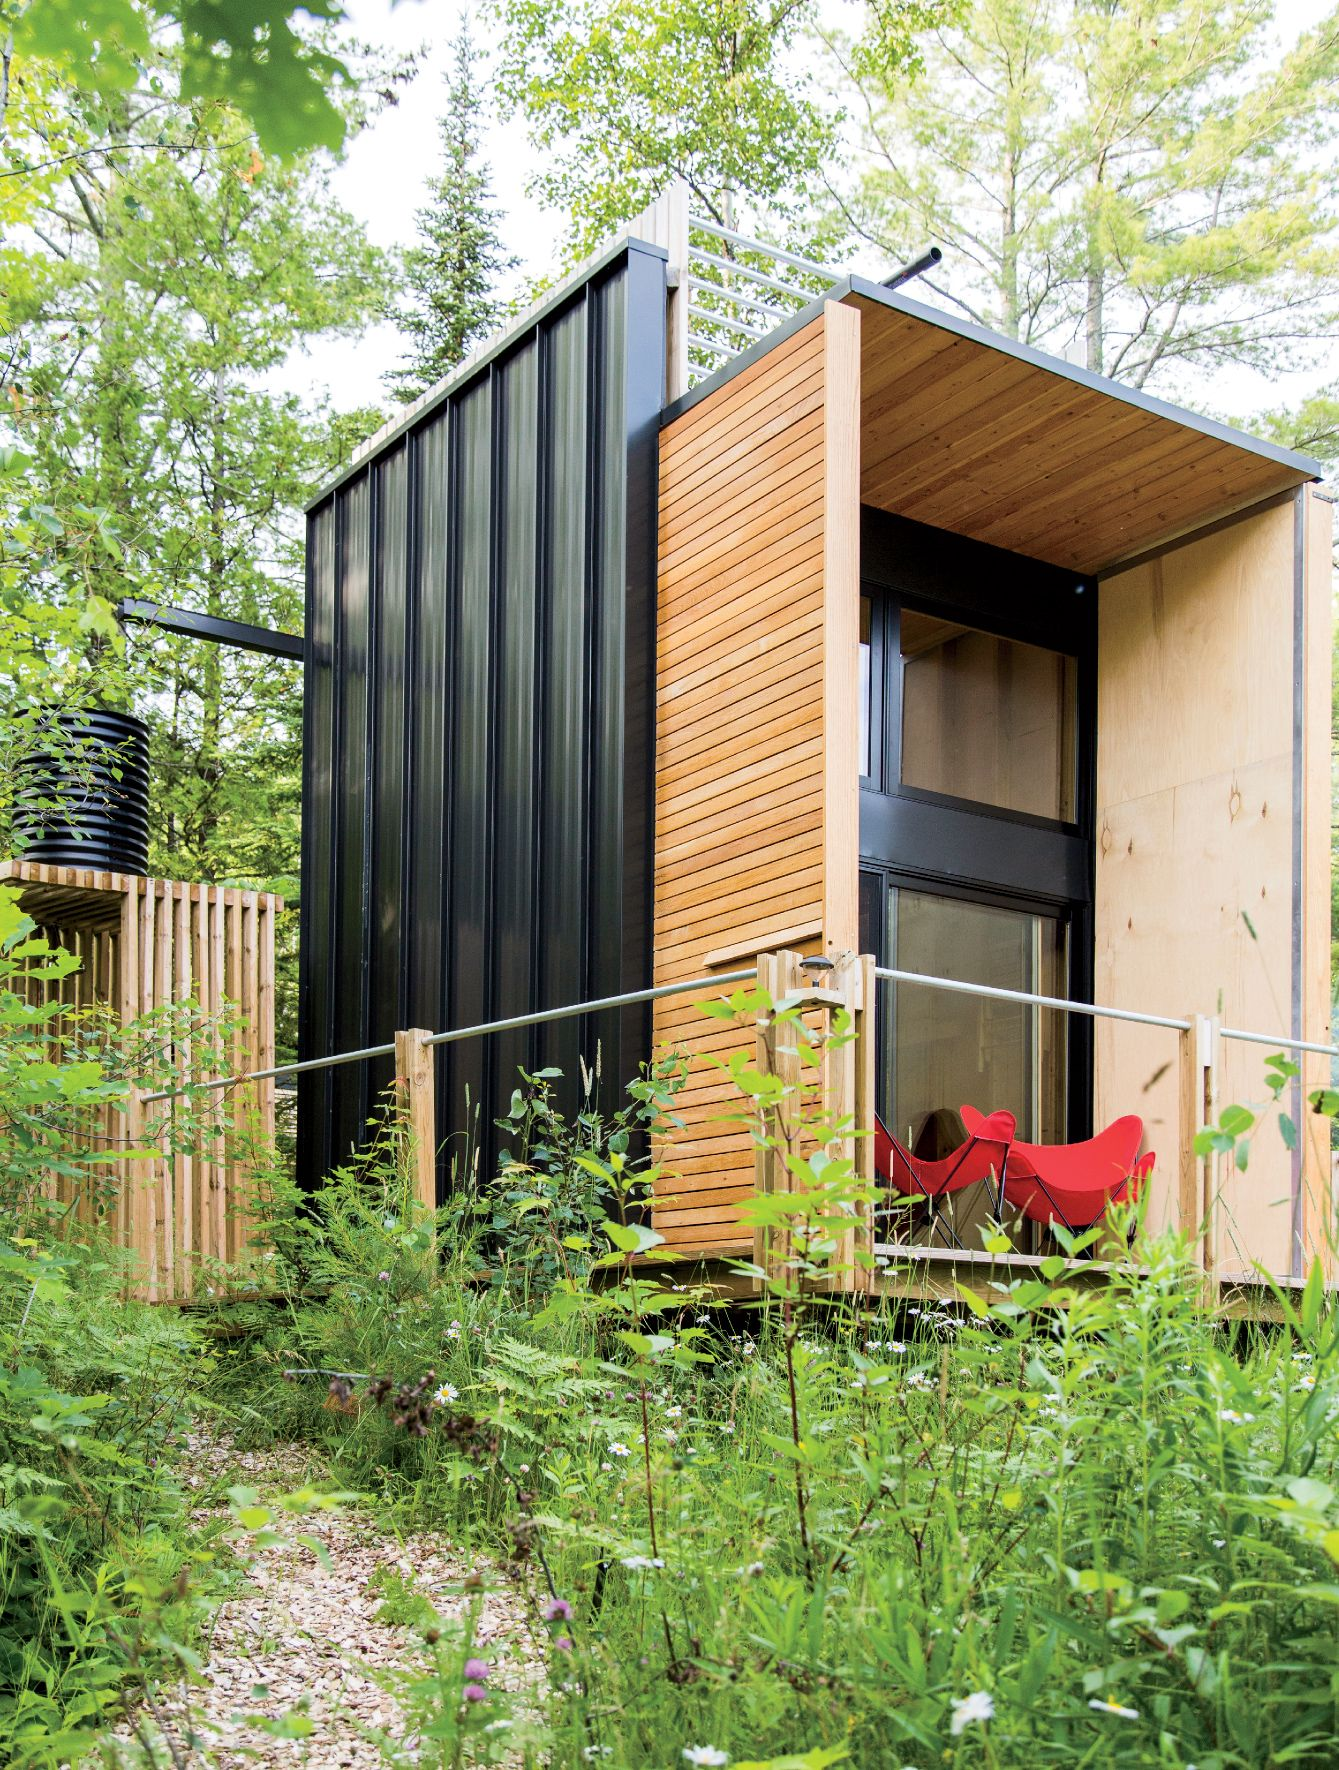 sale published a revelations d g via the builders cabins in by house small smallhousebliss architects at november for prefab wisconsin e gallery edge